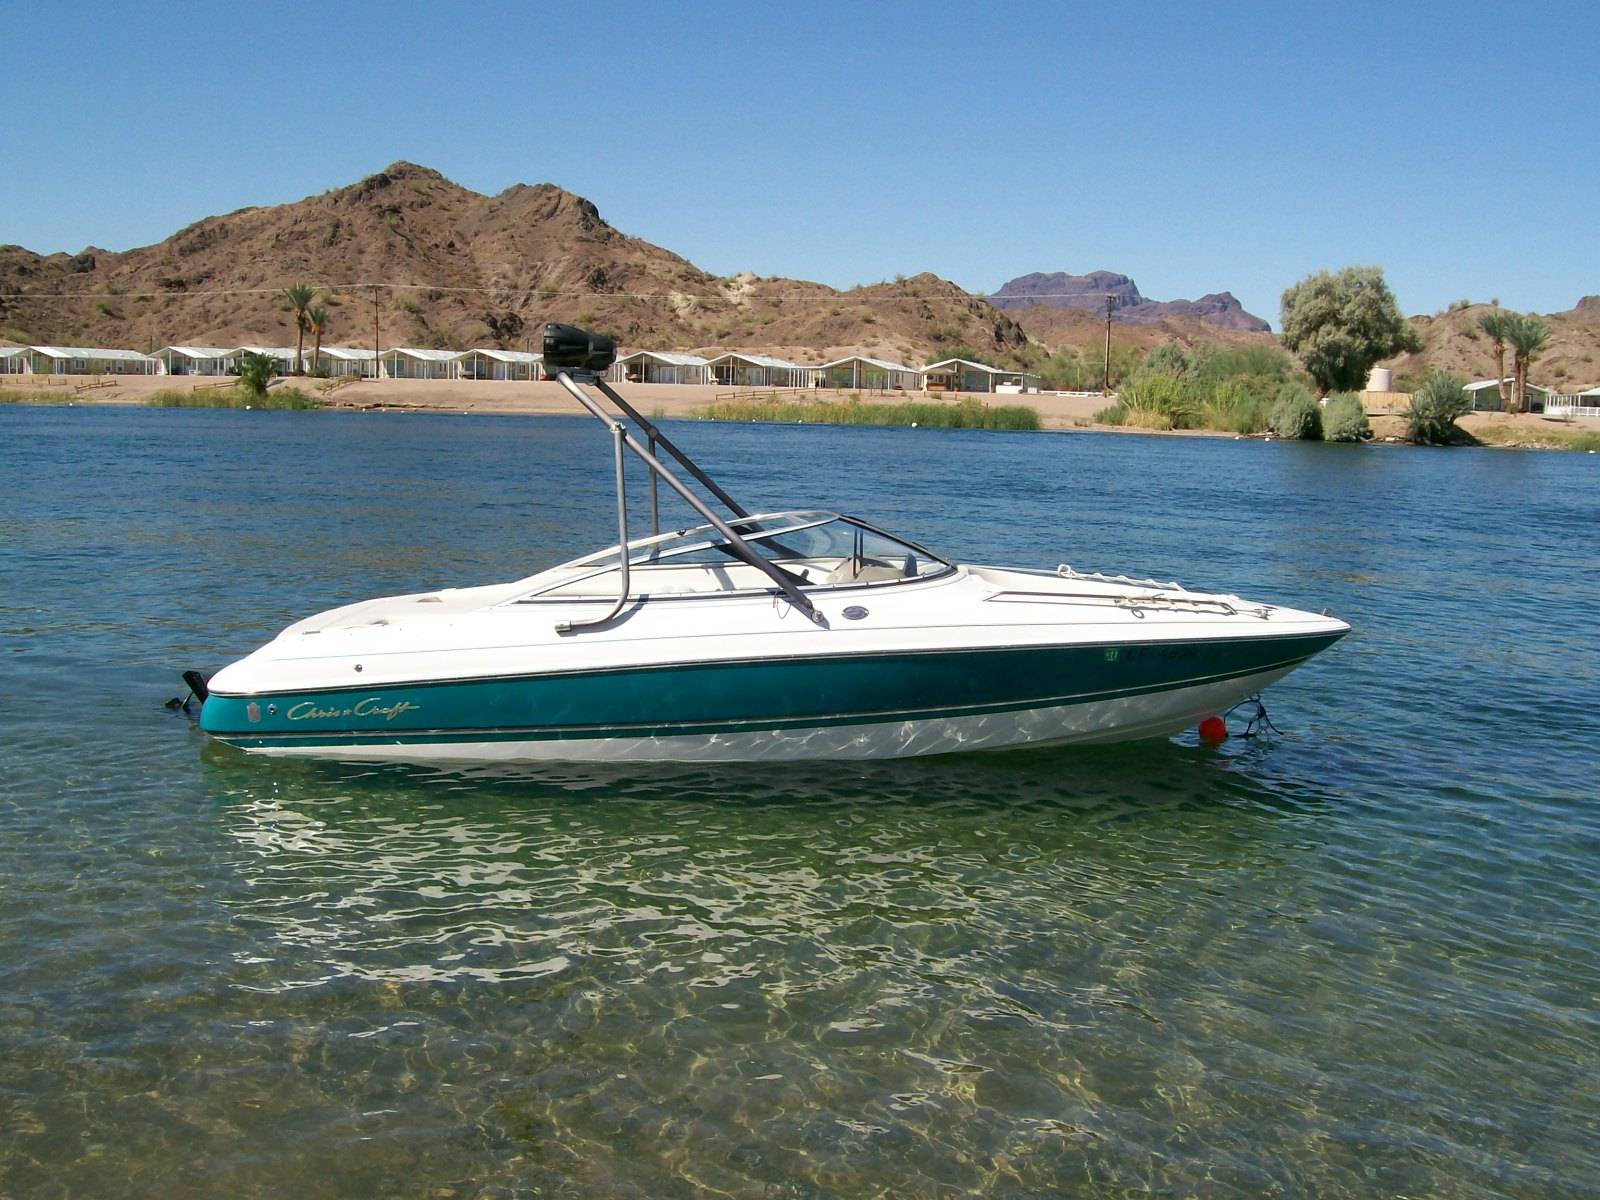 hight resolution of heres a couple pics from the weekend at parker az got the boat and matching trailer with 310hrs for 3900 00 it was only used at big bear lake and